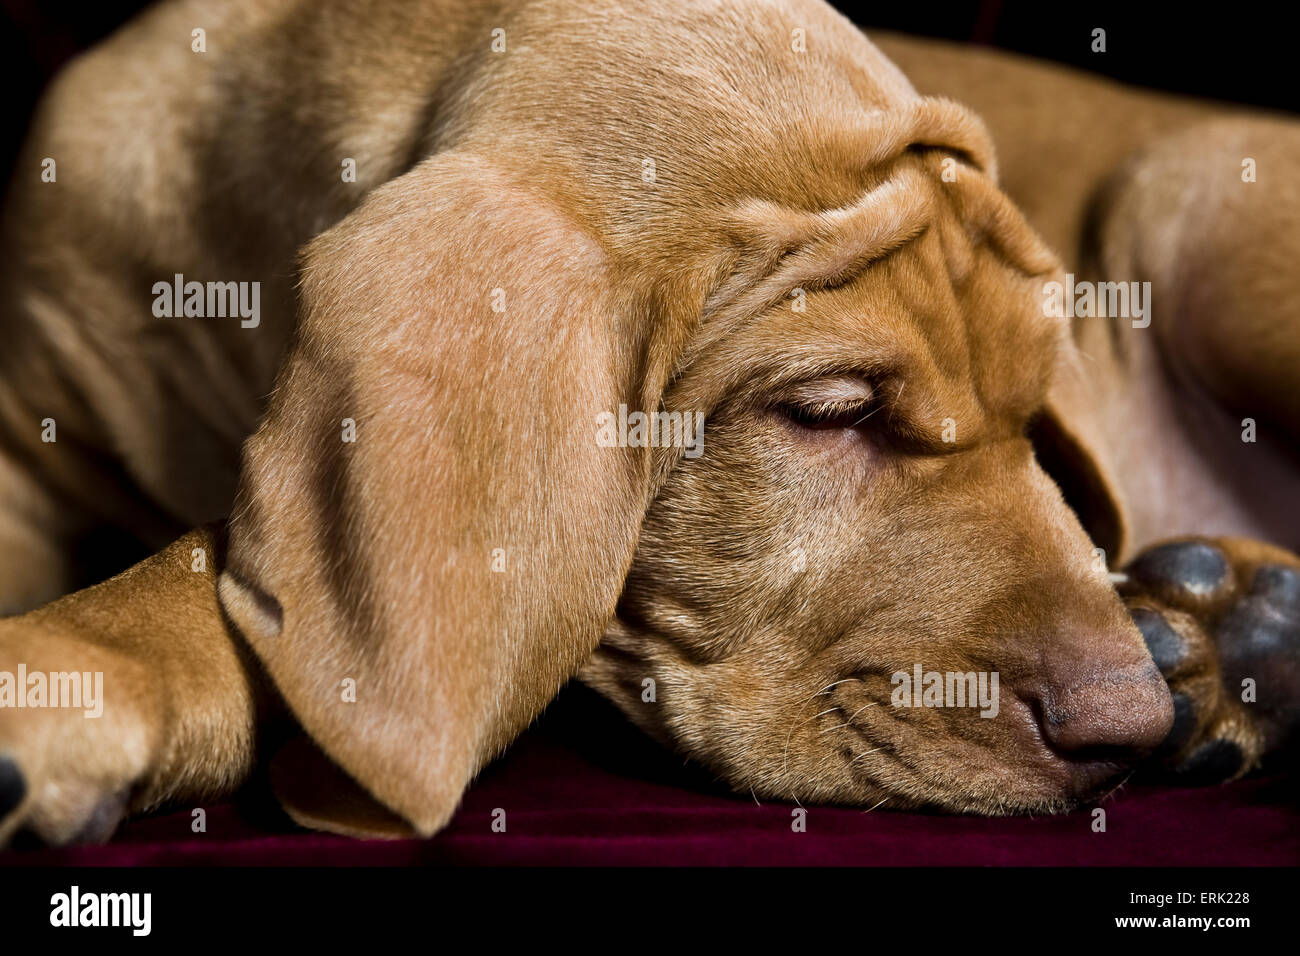 studio close up of young Vizsla puppy curled up sleeping with big floppy ears and extra wrinkles on his brow and - Stock Image